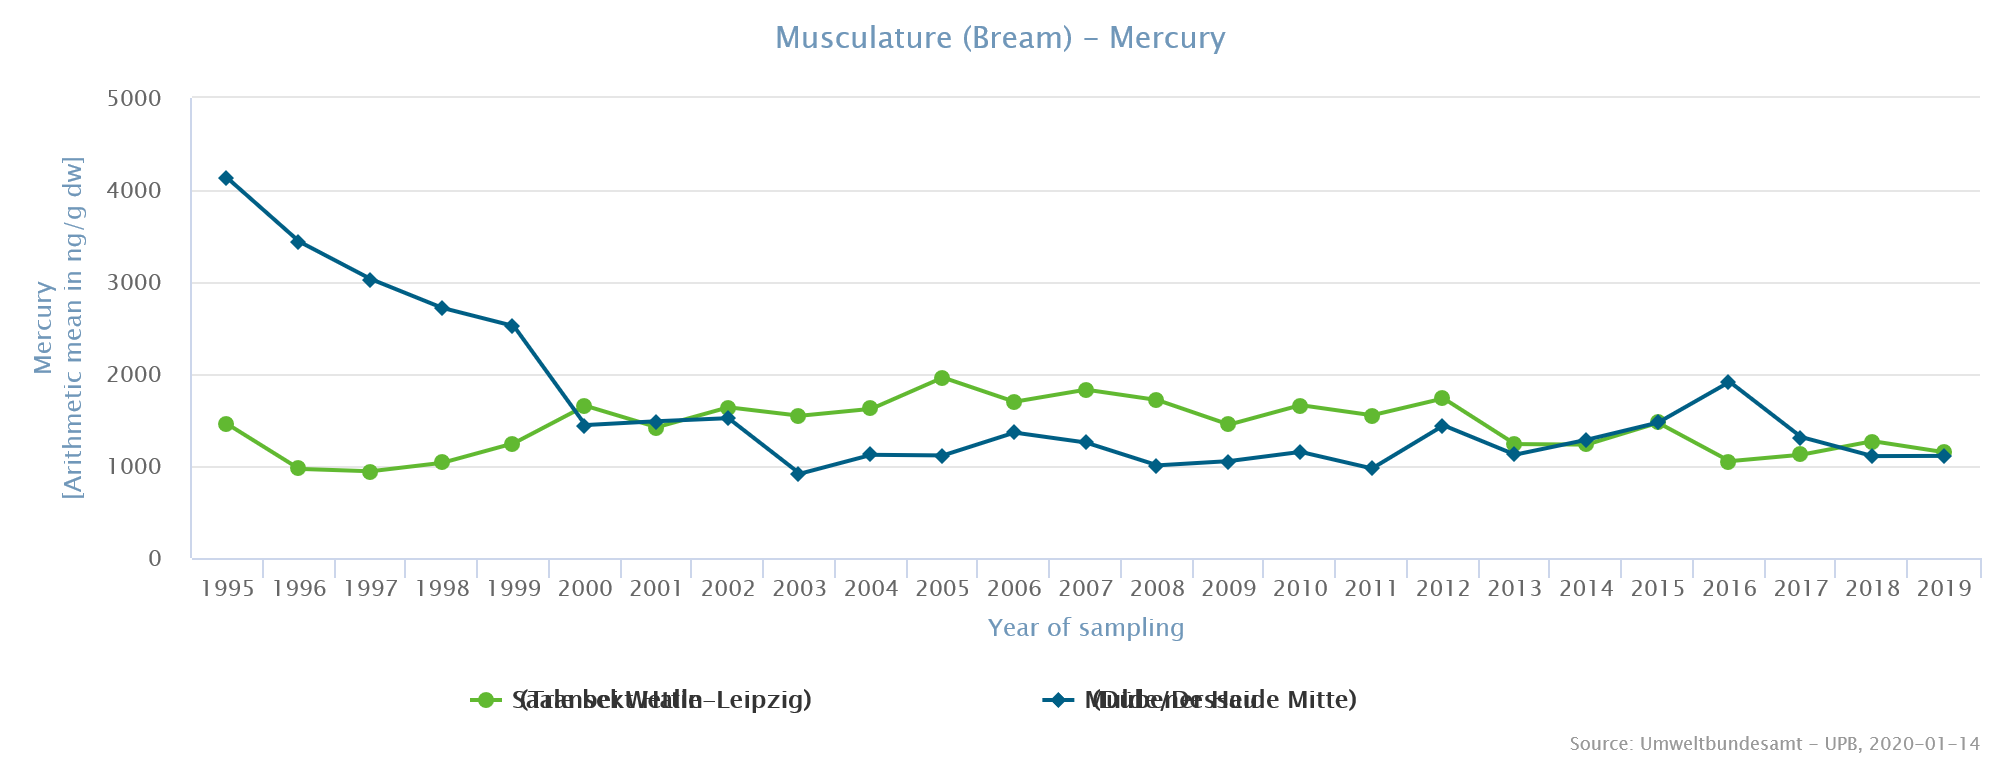 Levels of total mercury in muscle of bream from the rivers Mulde and Saale